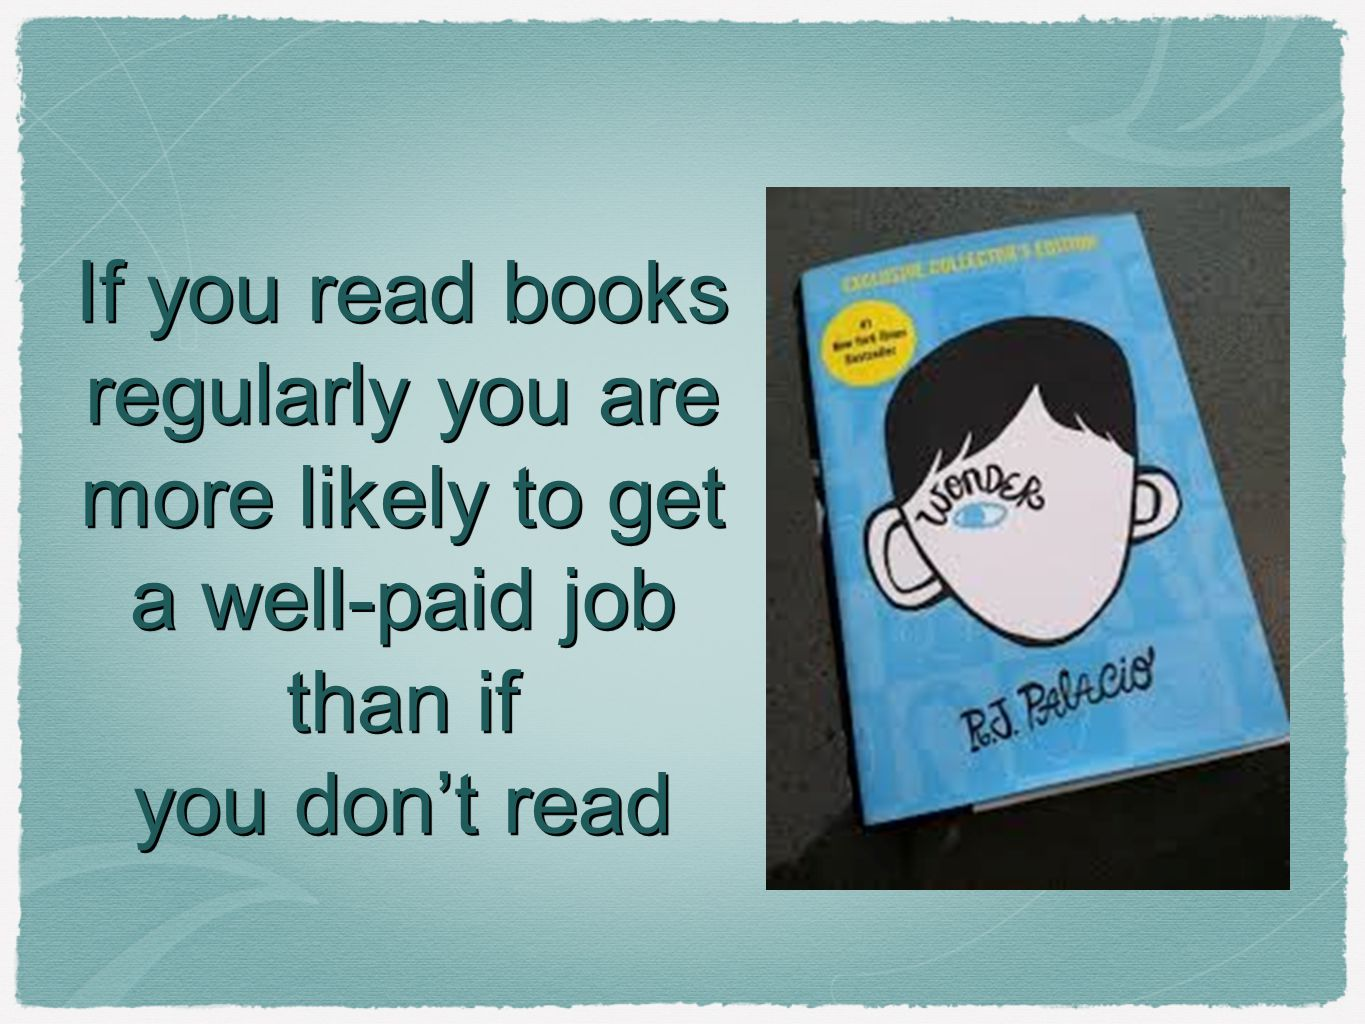 If you read books regularly you are more likely to get a well-paid job than if you don't read